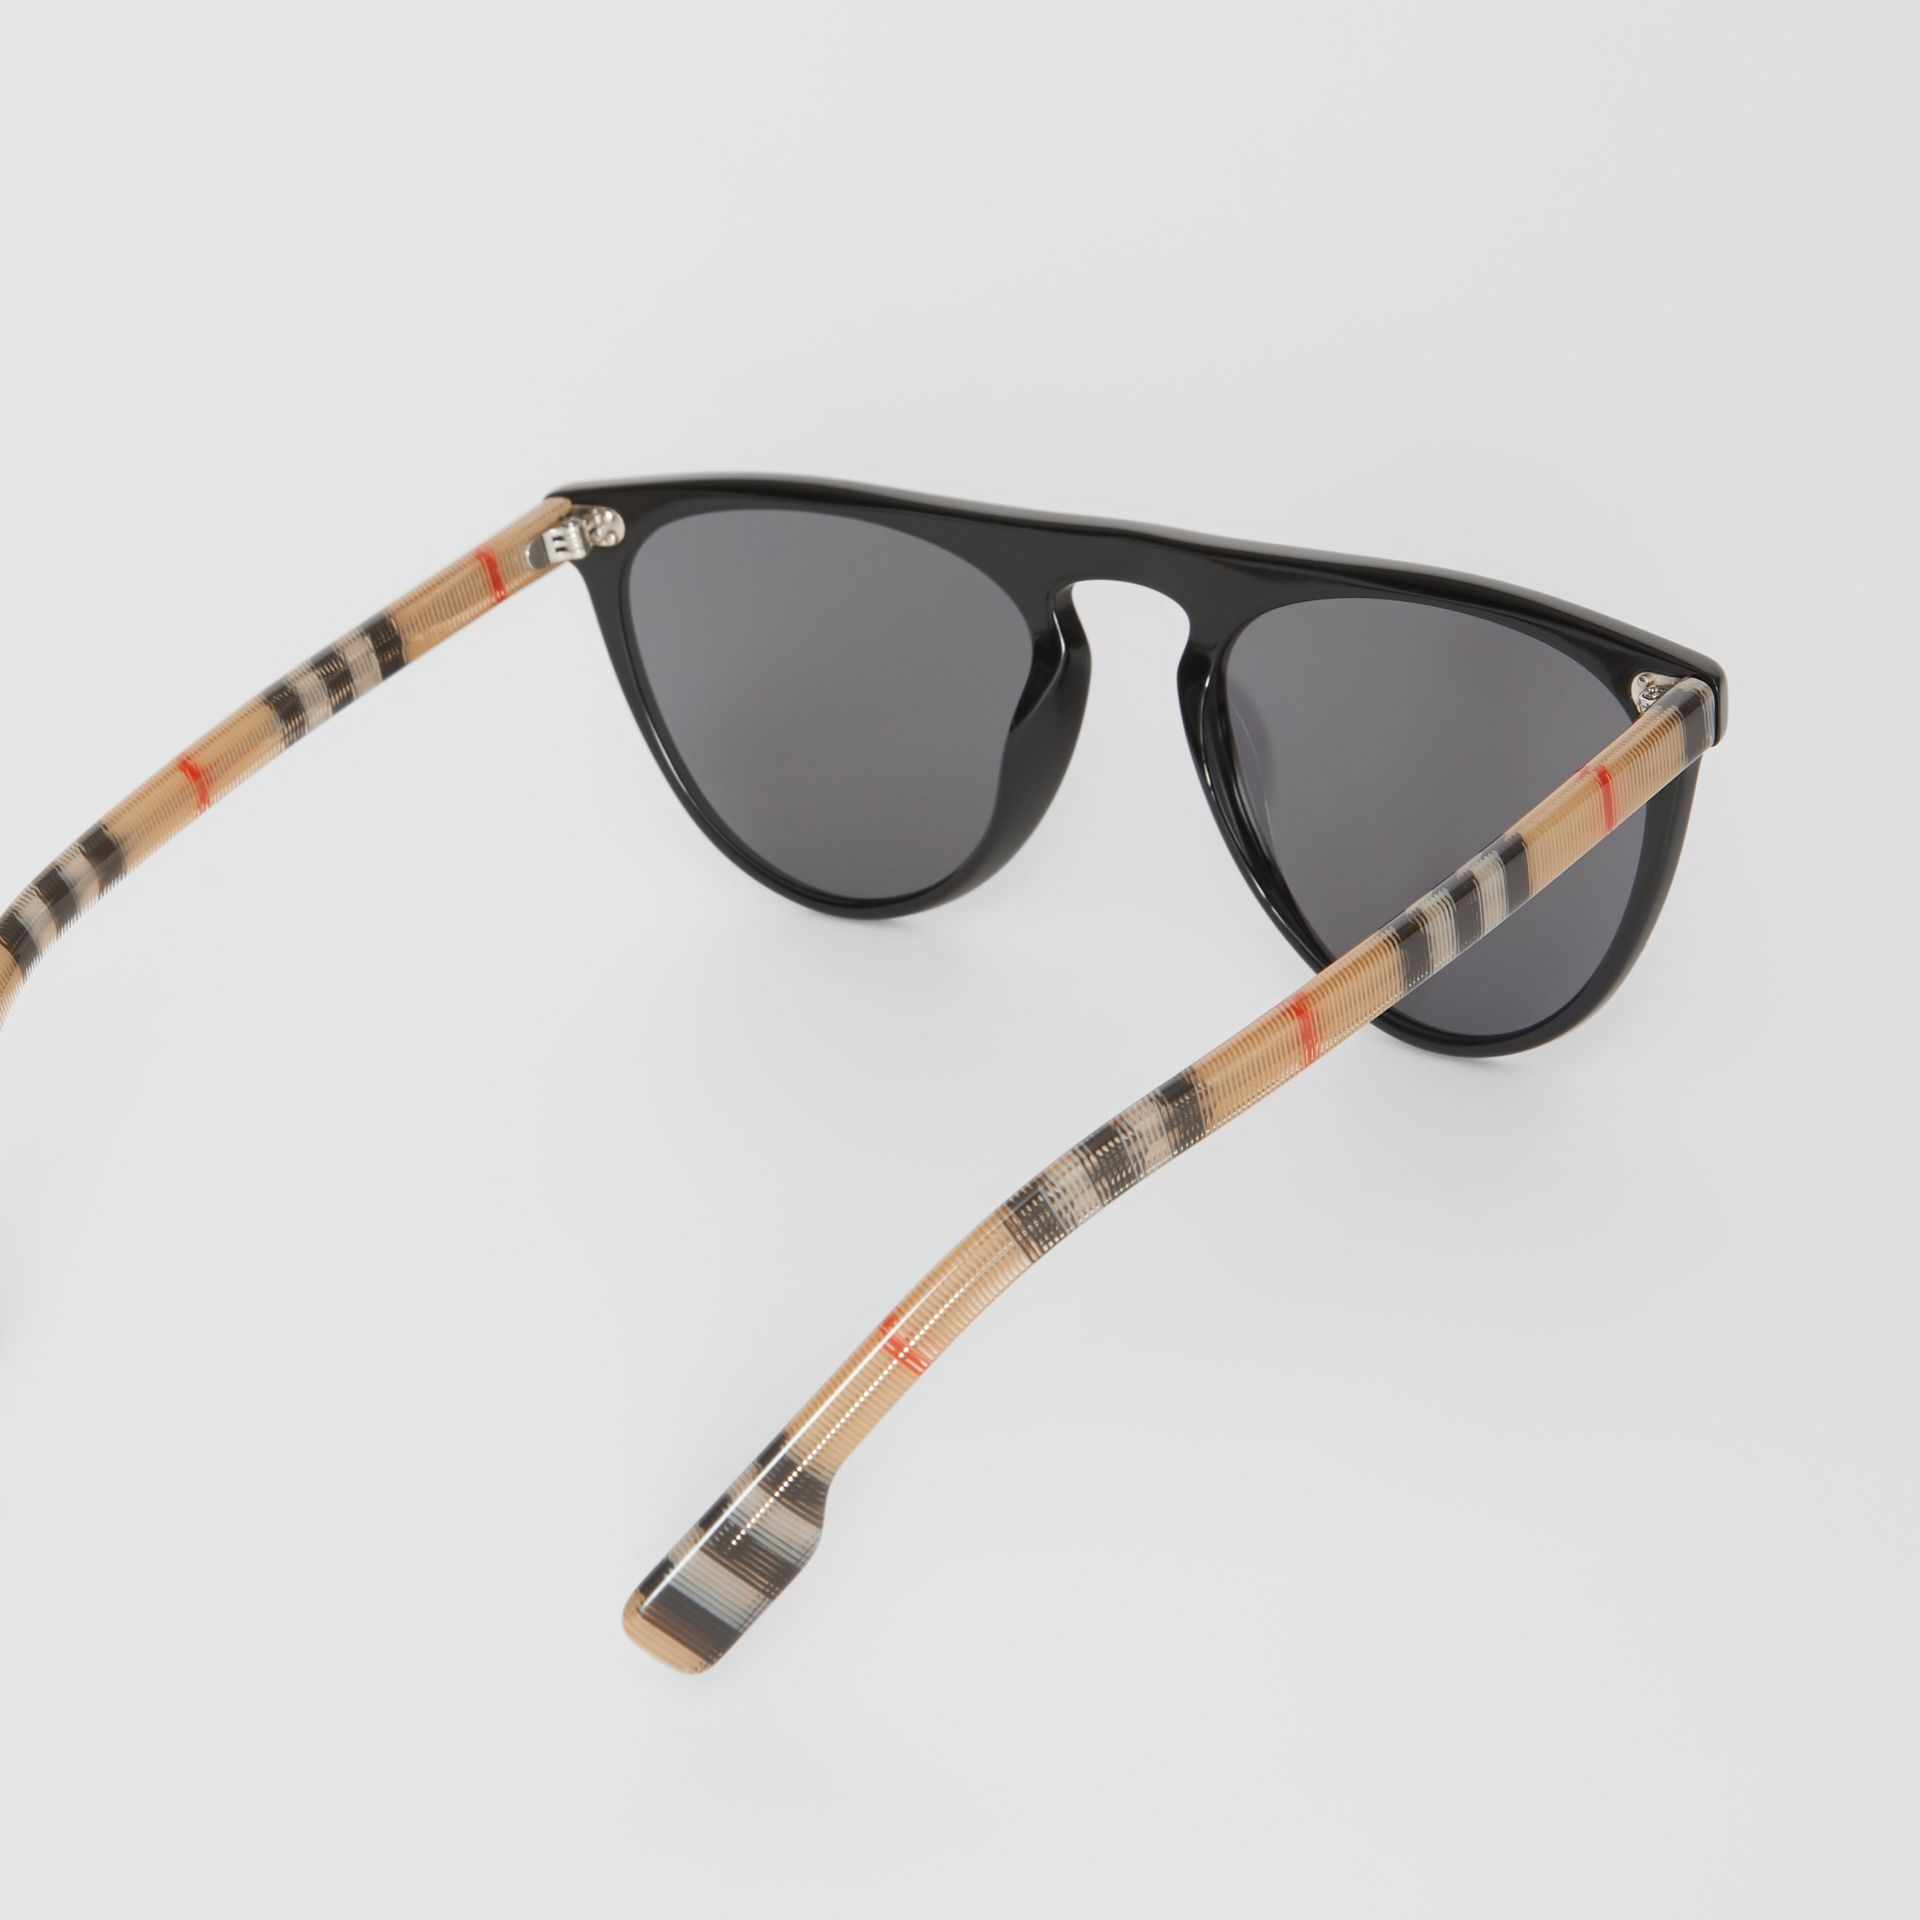 Vintage Check Detail Keyhole D-shaped Sunglasses in Black/beige - Men | Burberry Australia - gallery image 4